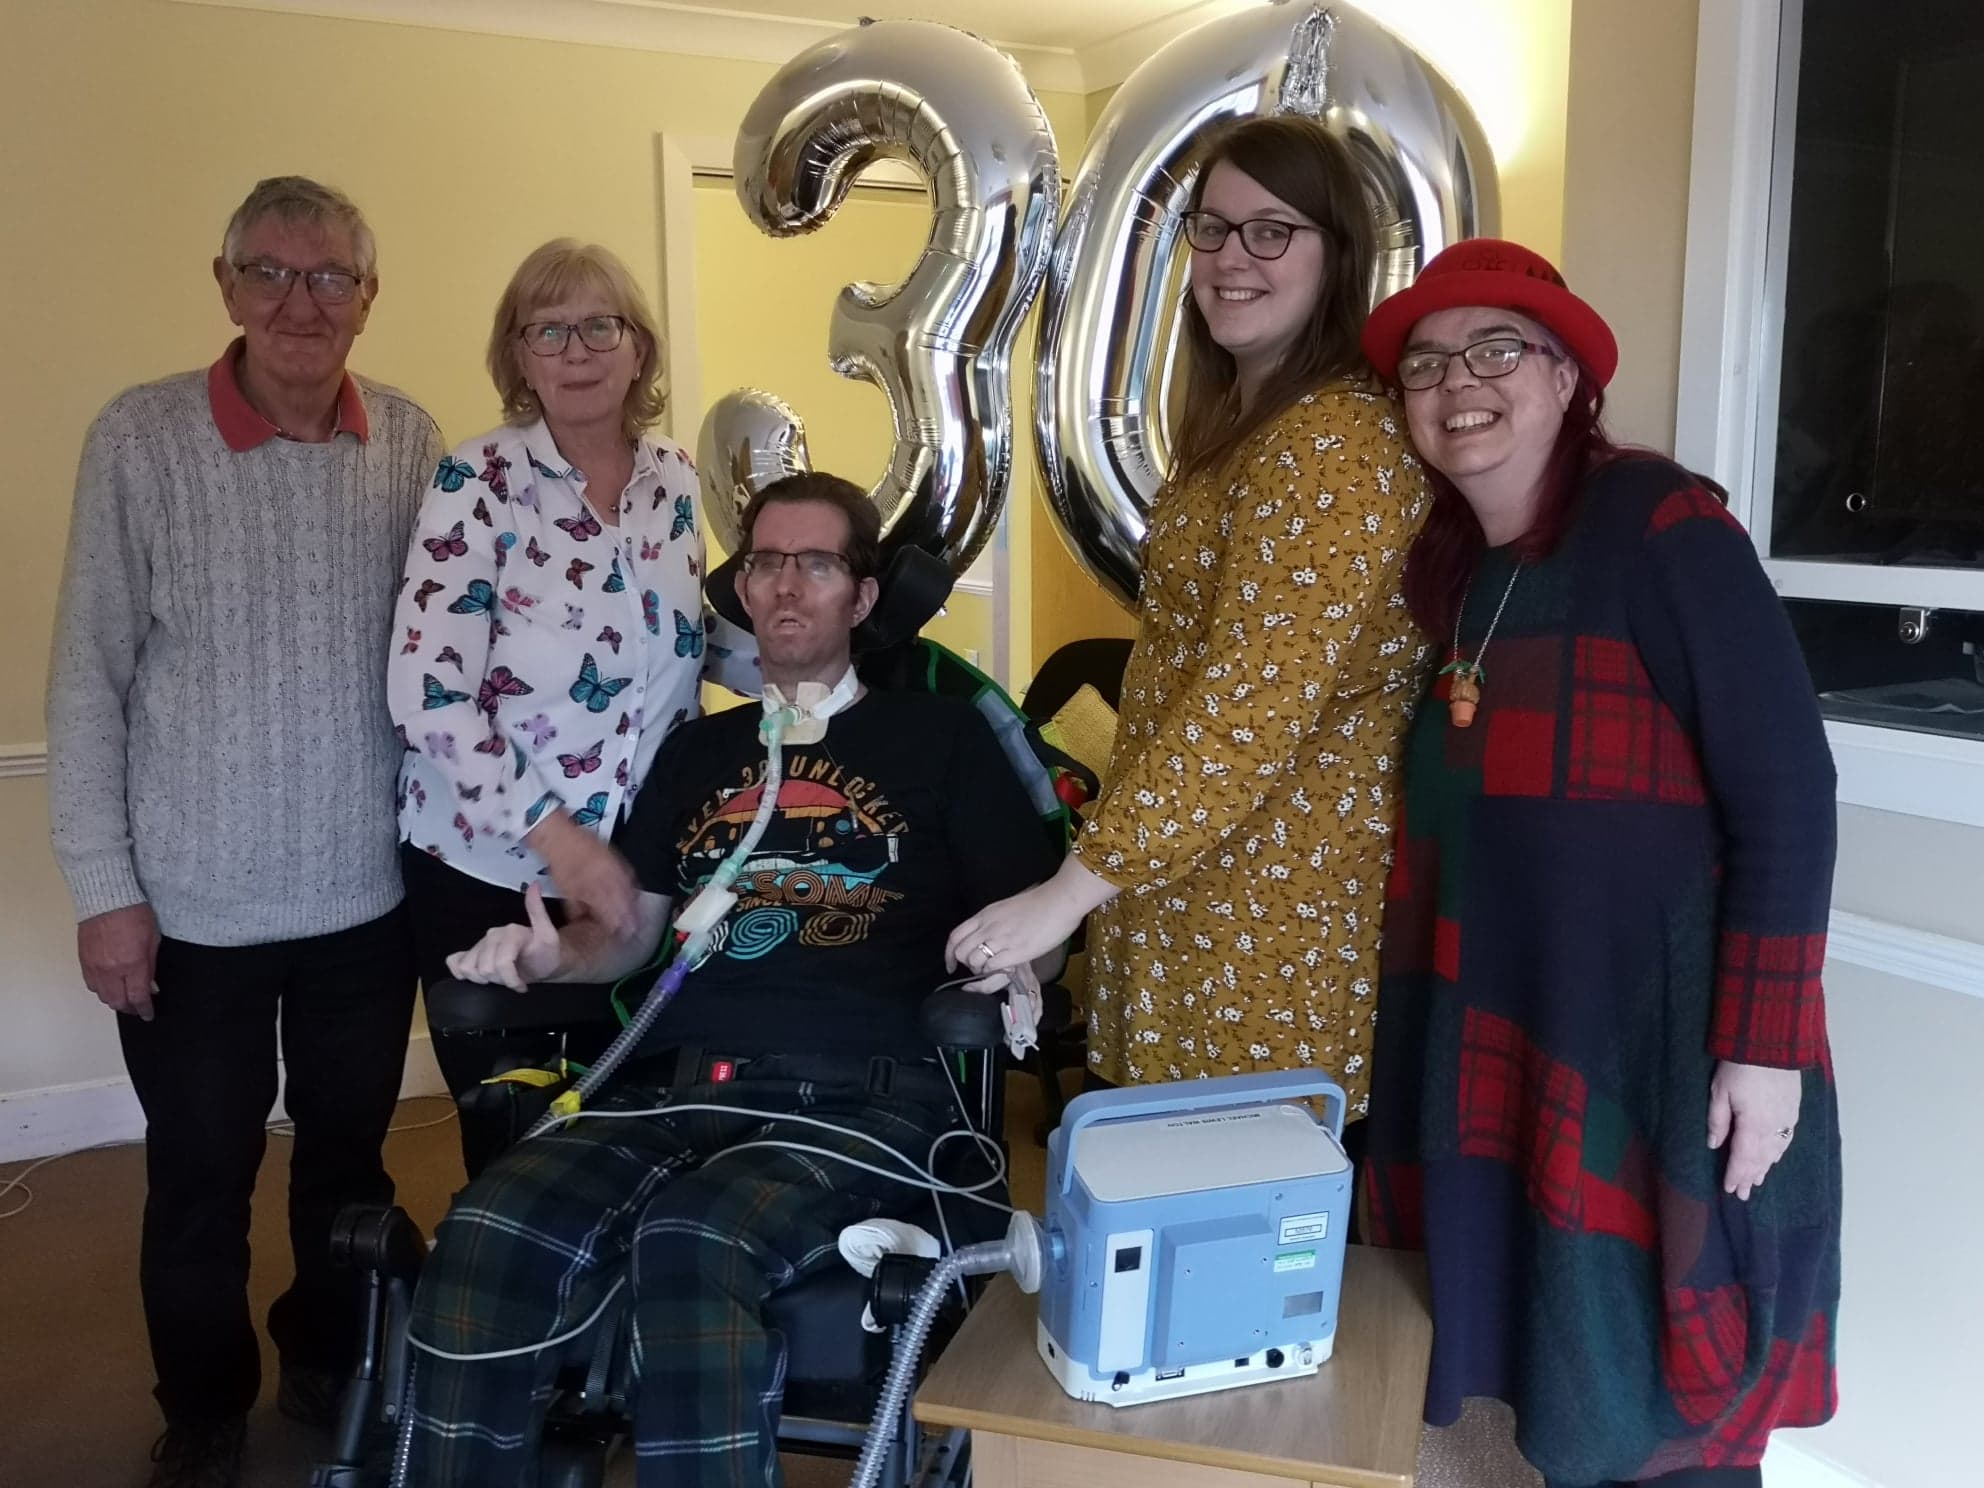 Michael Walton, from Southport, celebrates his 30th birthday